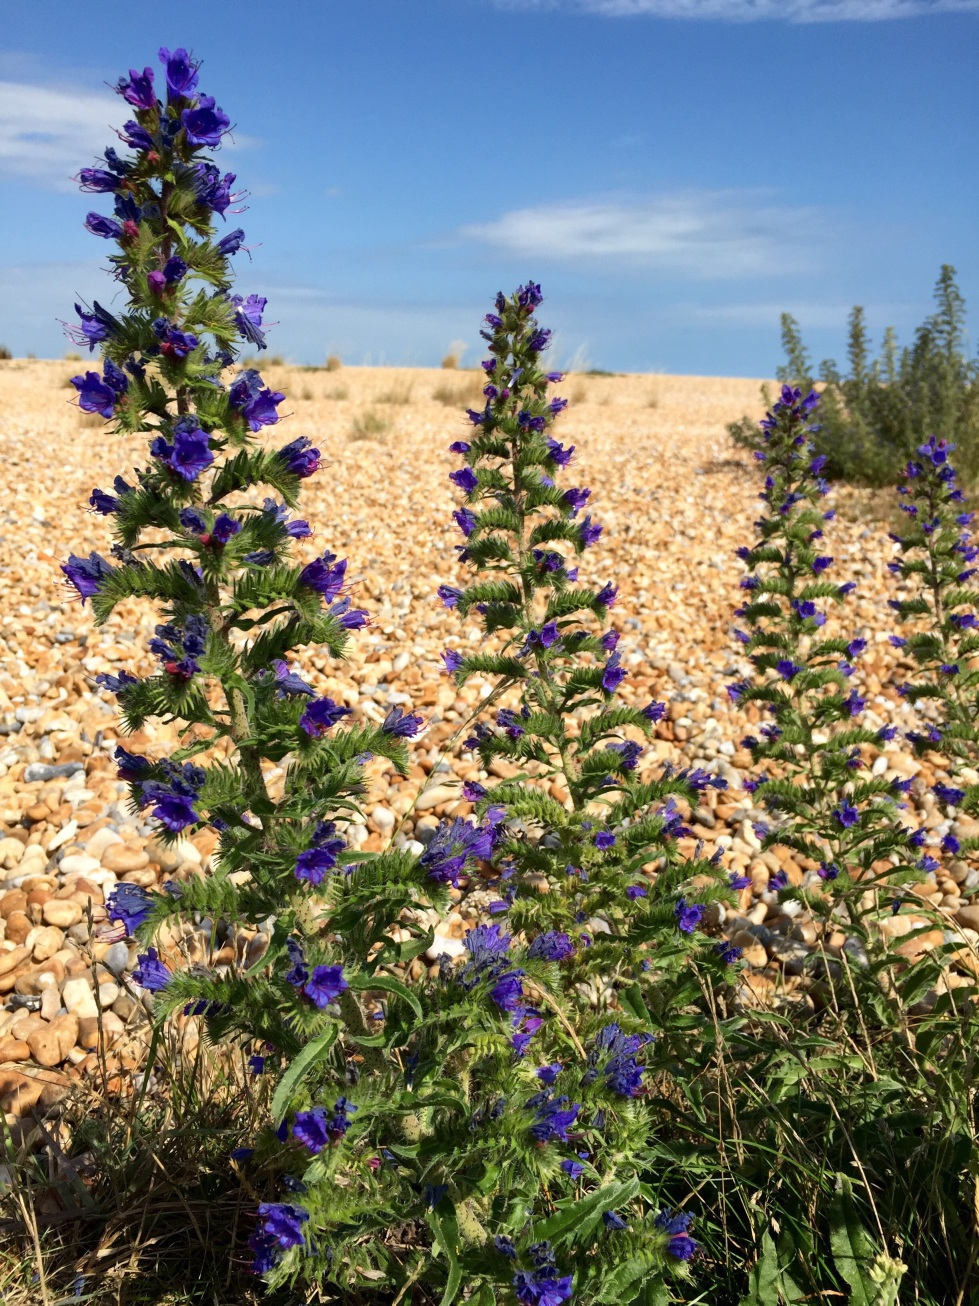 Viper's bugloss, Walmer beach, August 2015